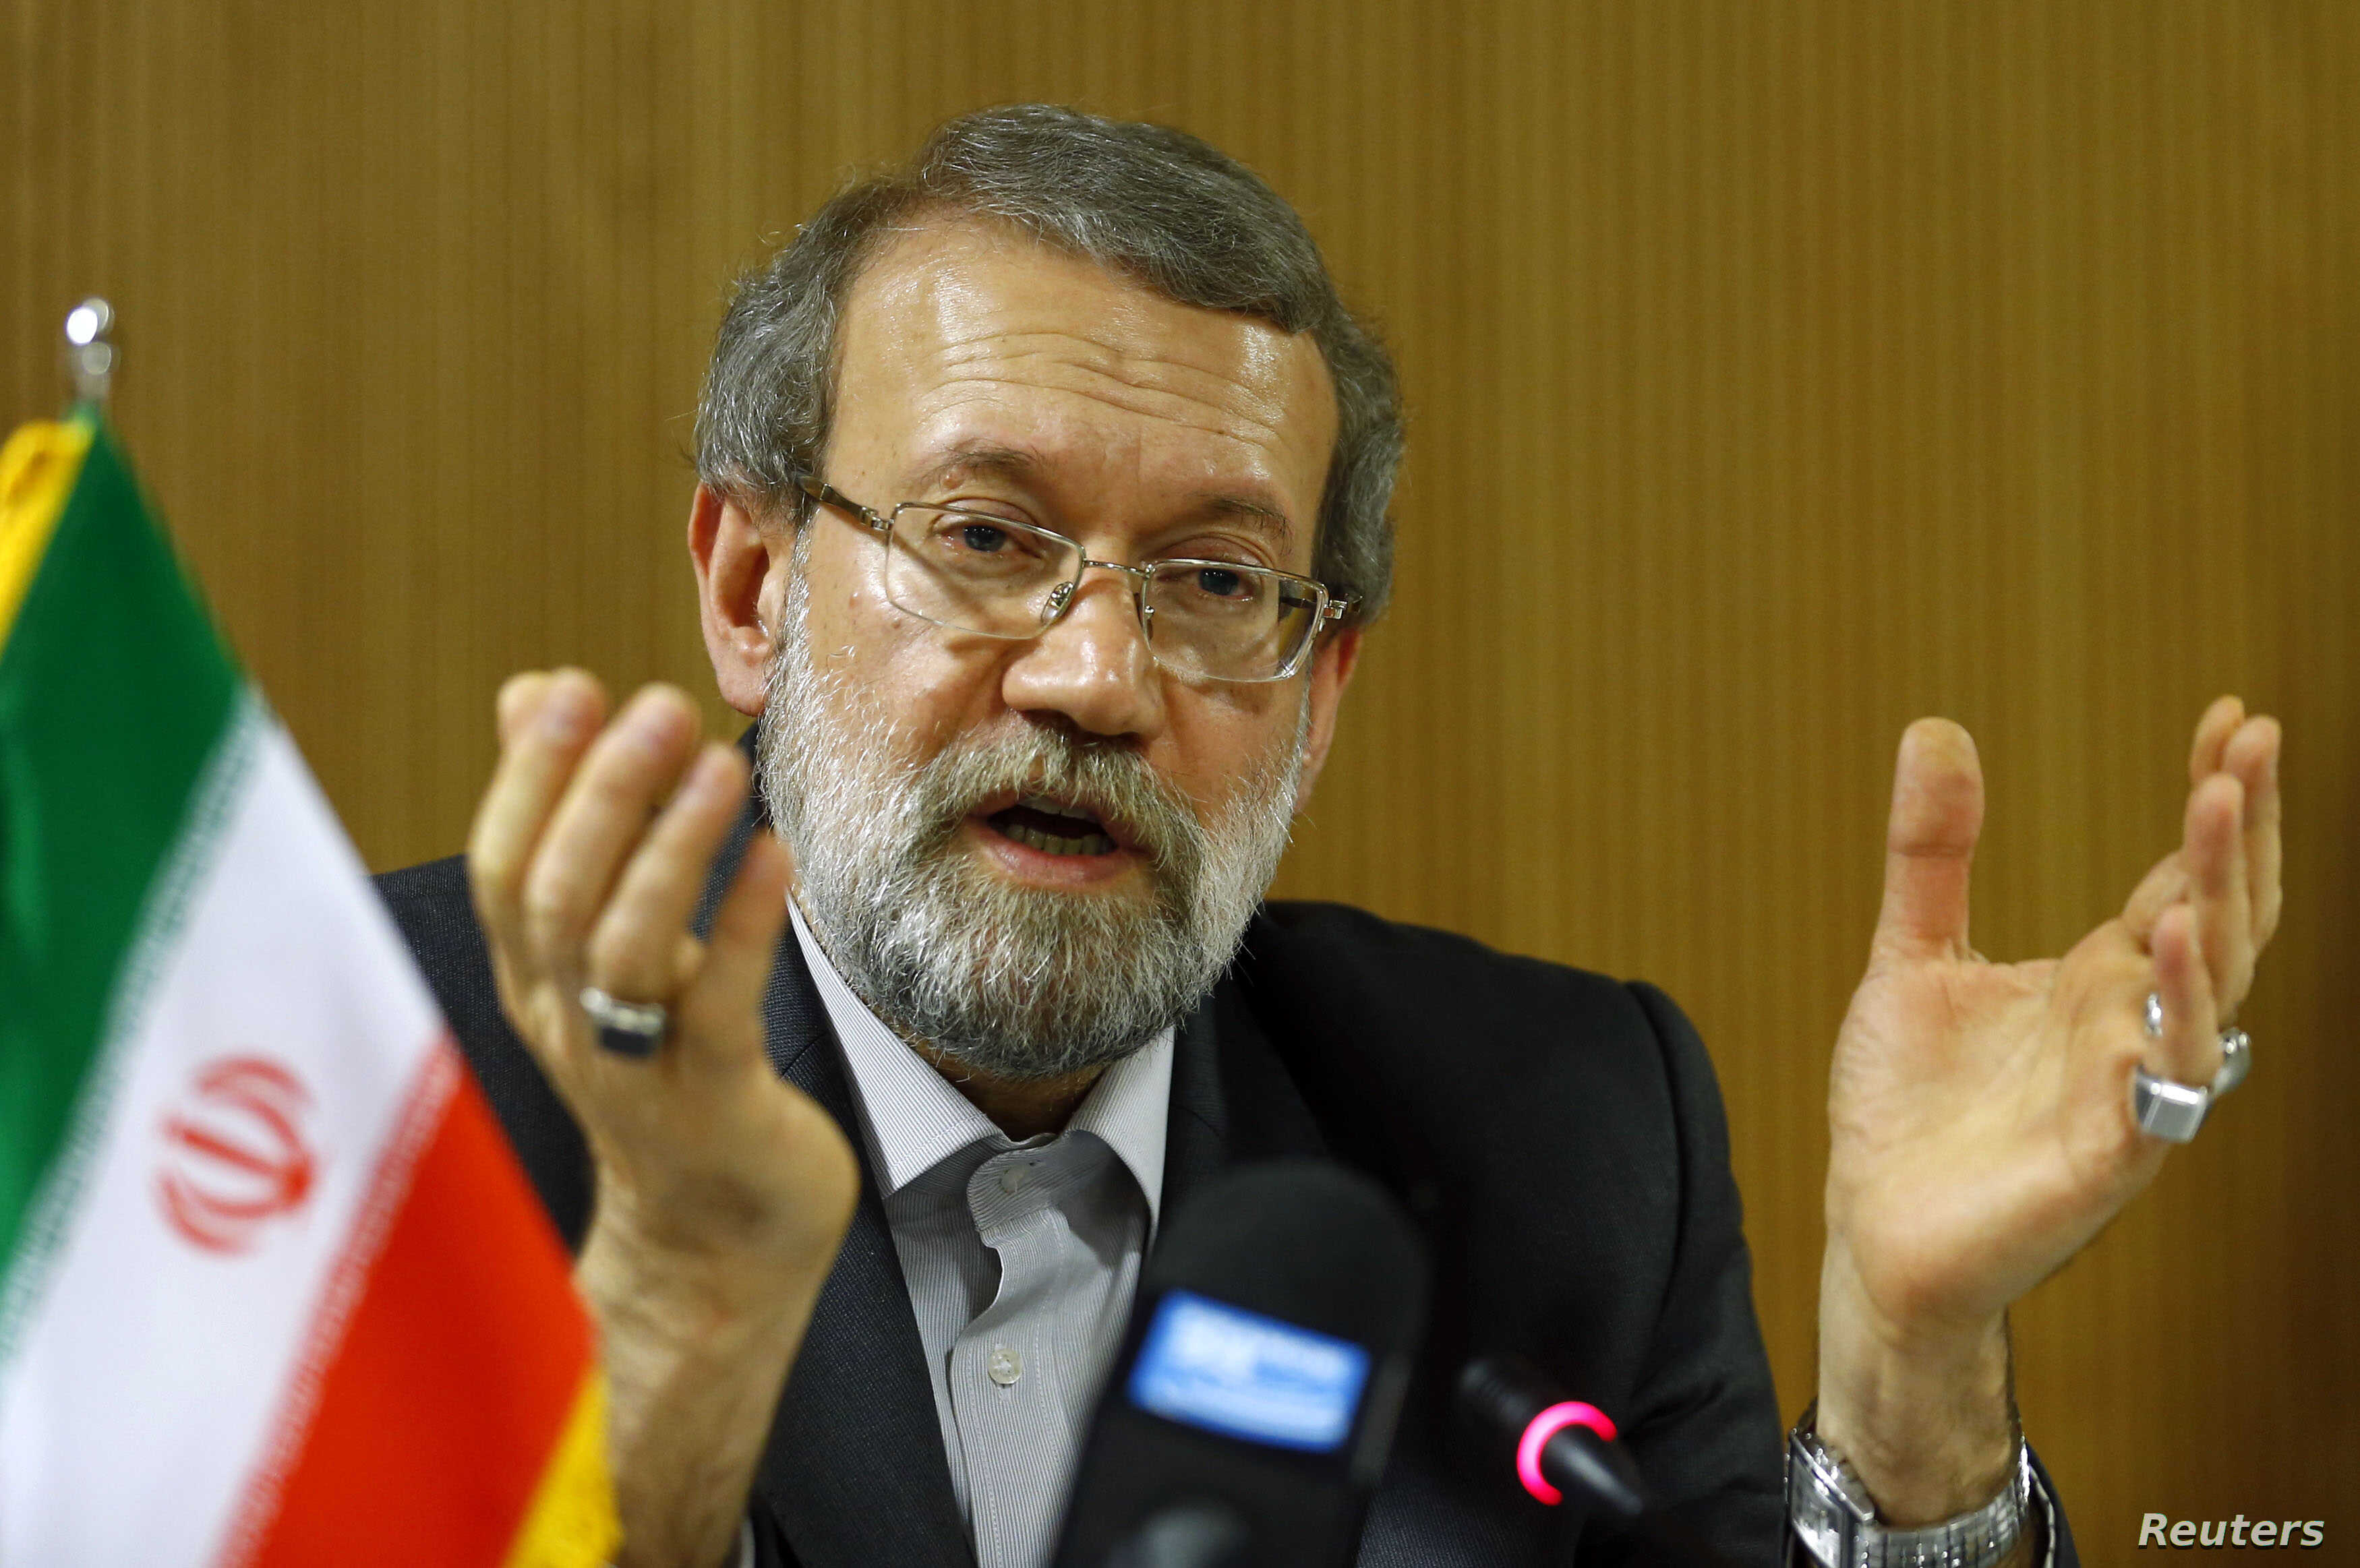 Larijani: Iran, World Powers Must Build Confidence | Voice